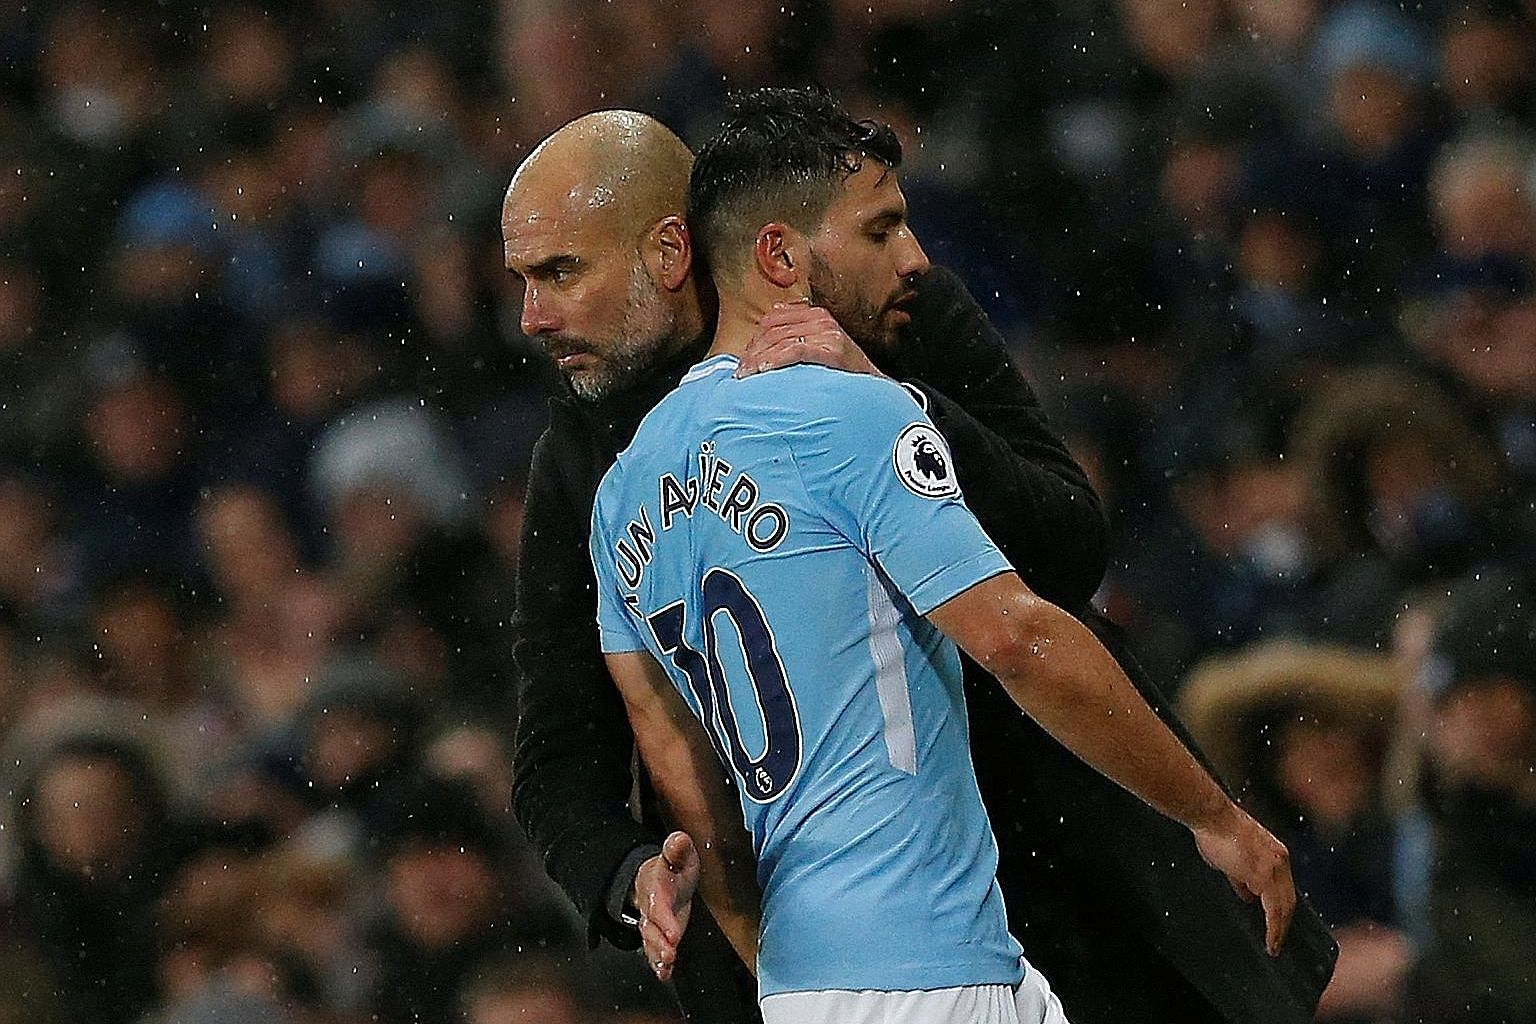 Sergio Aguero's form this season has convinced his manager Pep Guardiola that he is capable of more than just scoring goals.